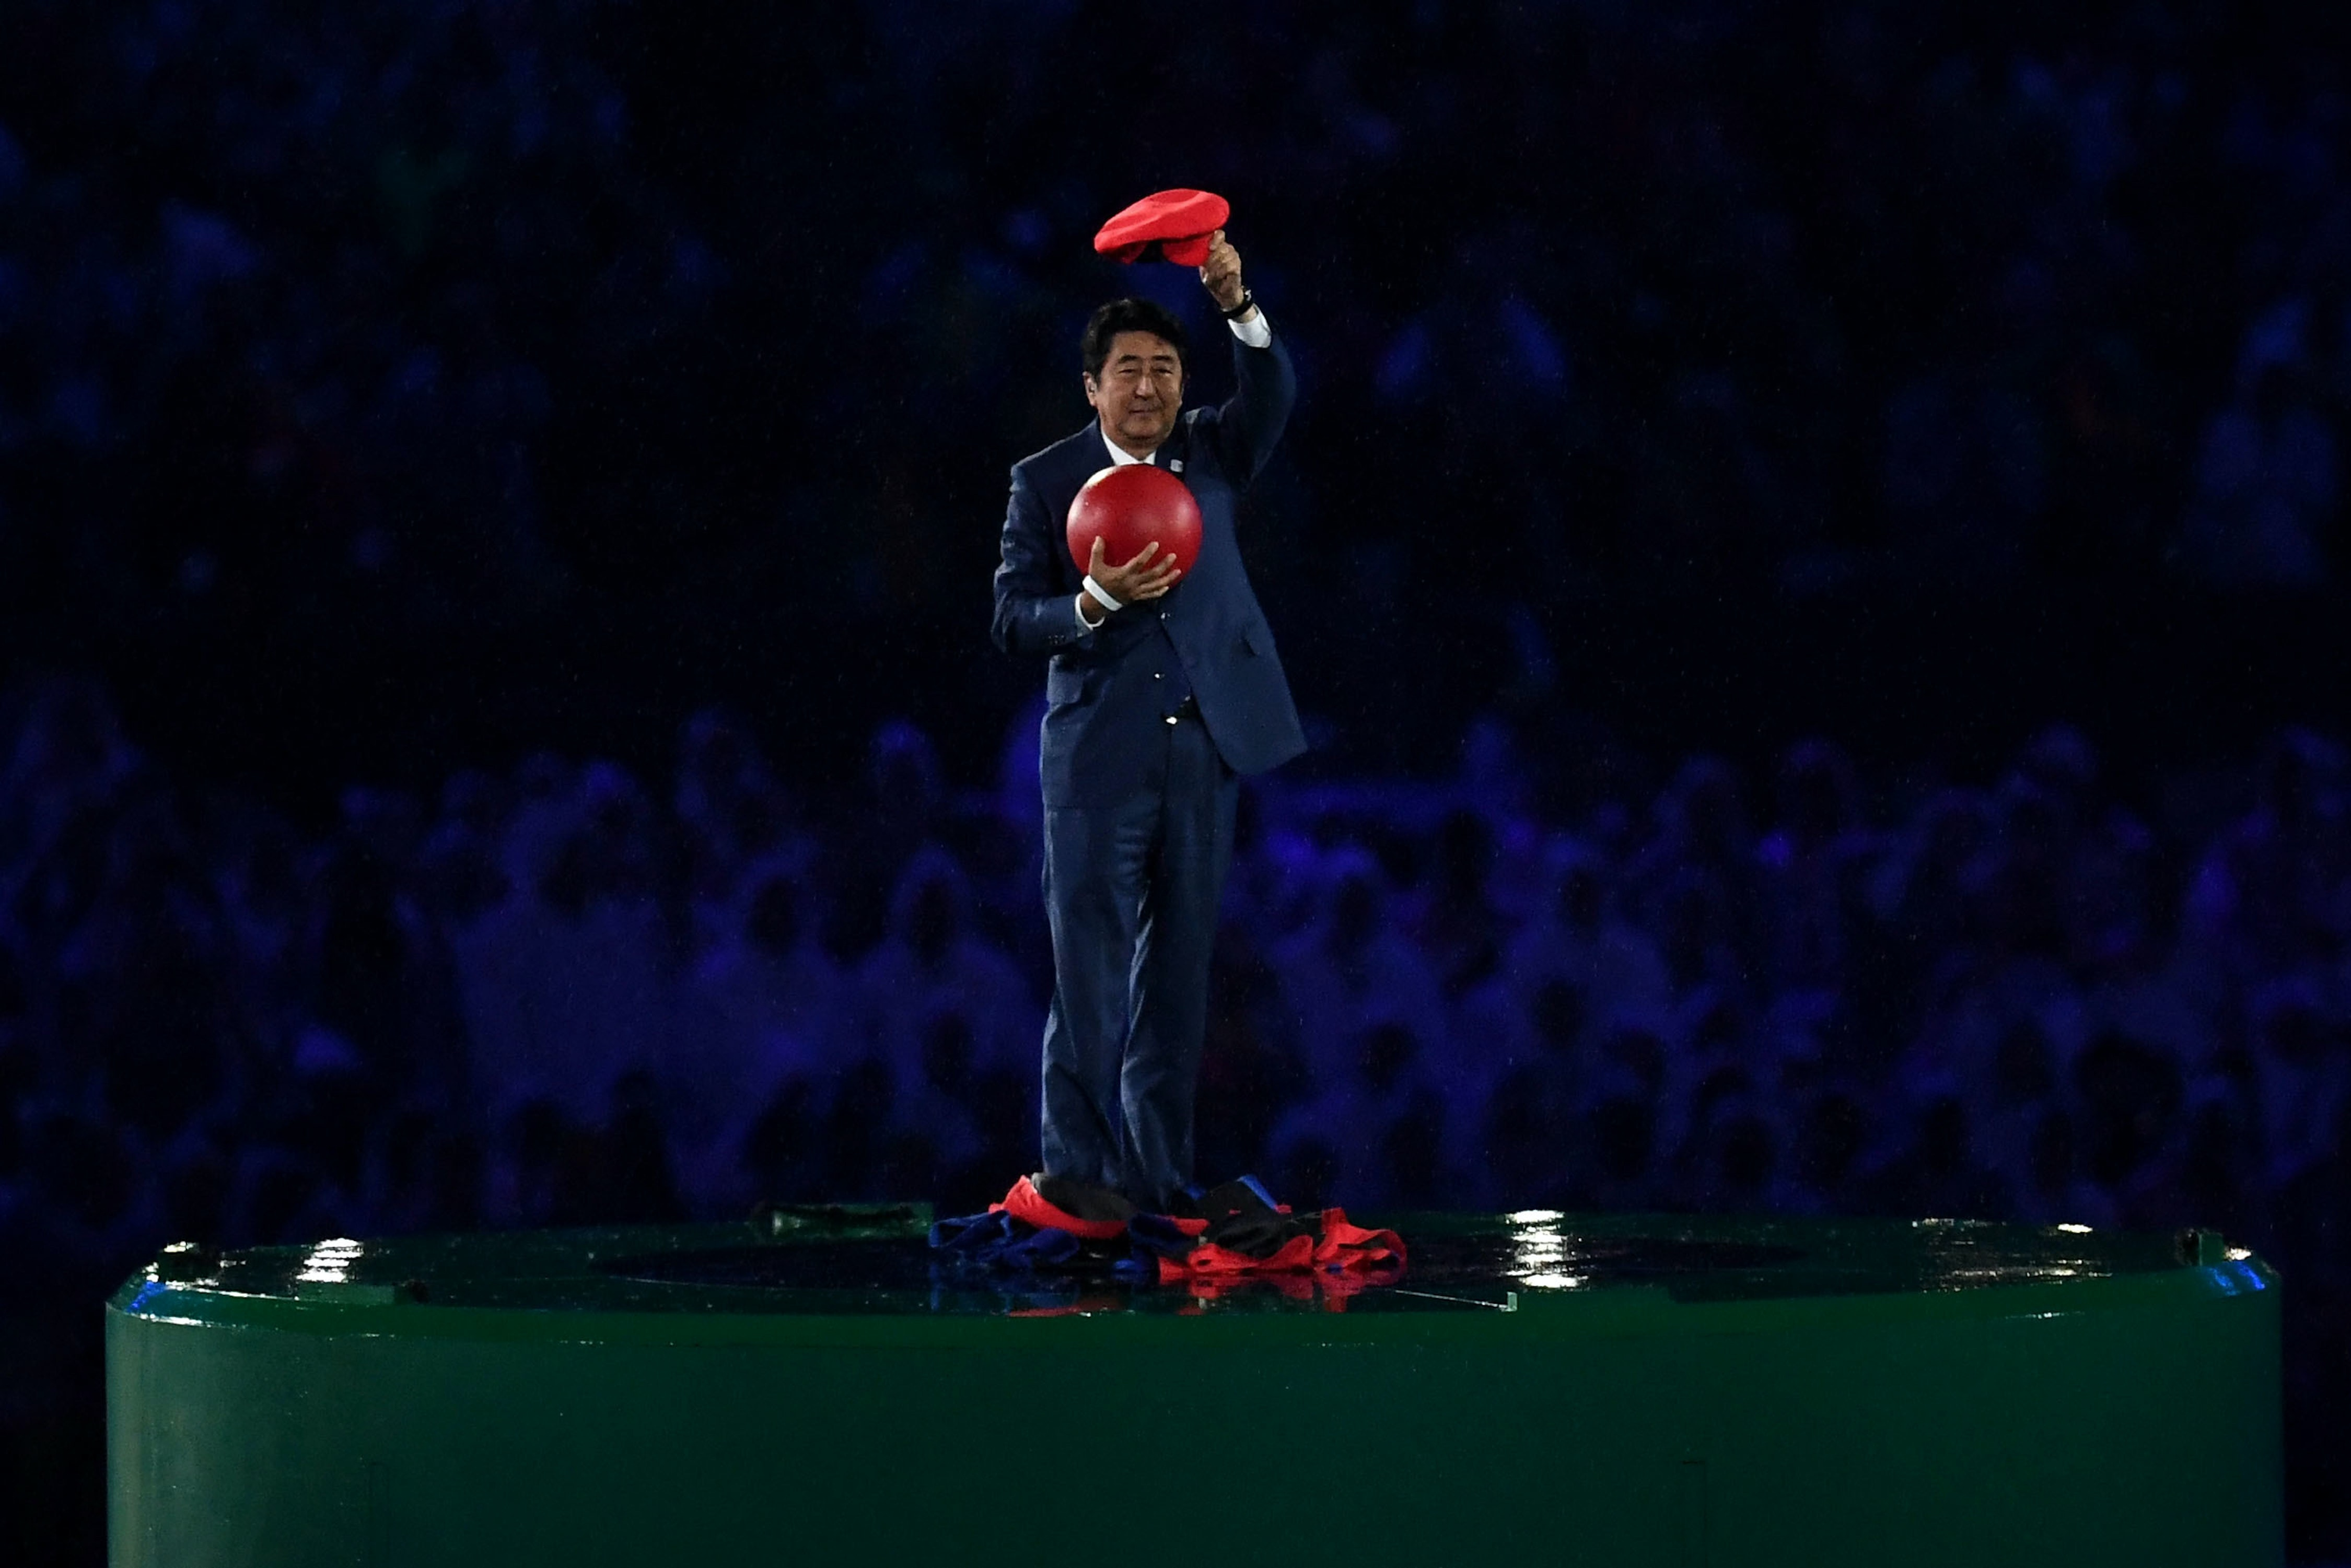 We see you, Prime Minister Shinzo Abe. We are so ready for the Japan 2020 Olympics.